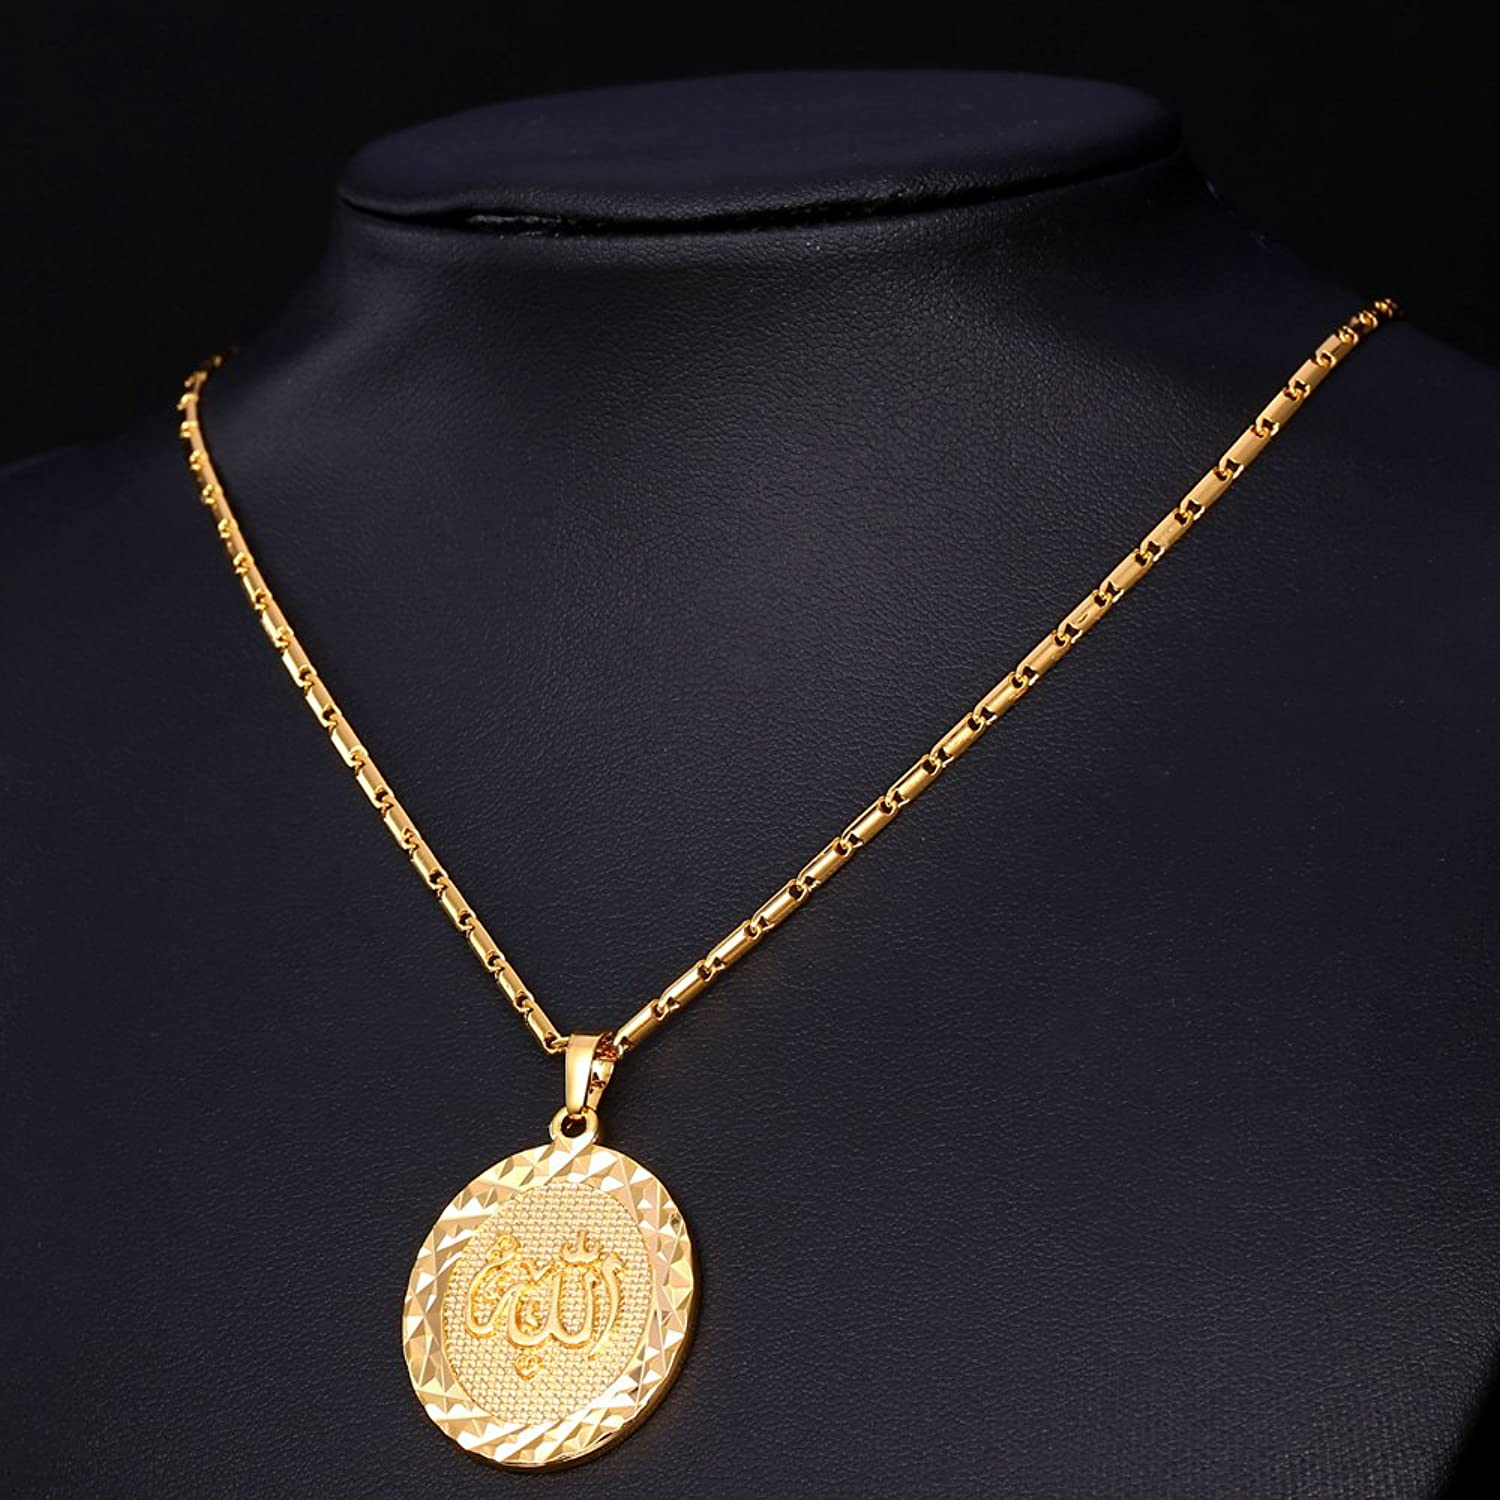 18k gold tone allah pendant with a 22 inch link chain necklace 18k gold tone allah pendant with a 22 inch link chain necklace amazon jewelry mozeypictures Choice Image